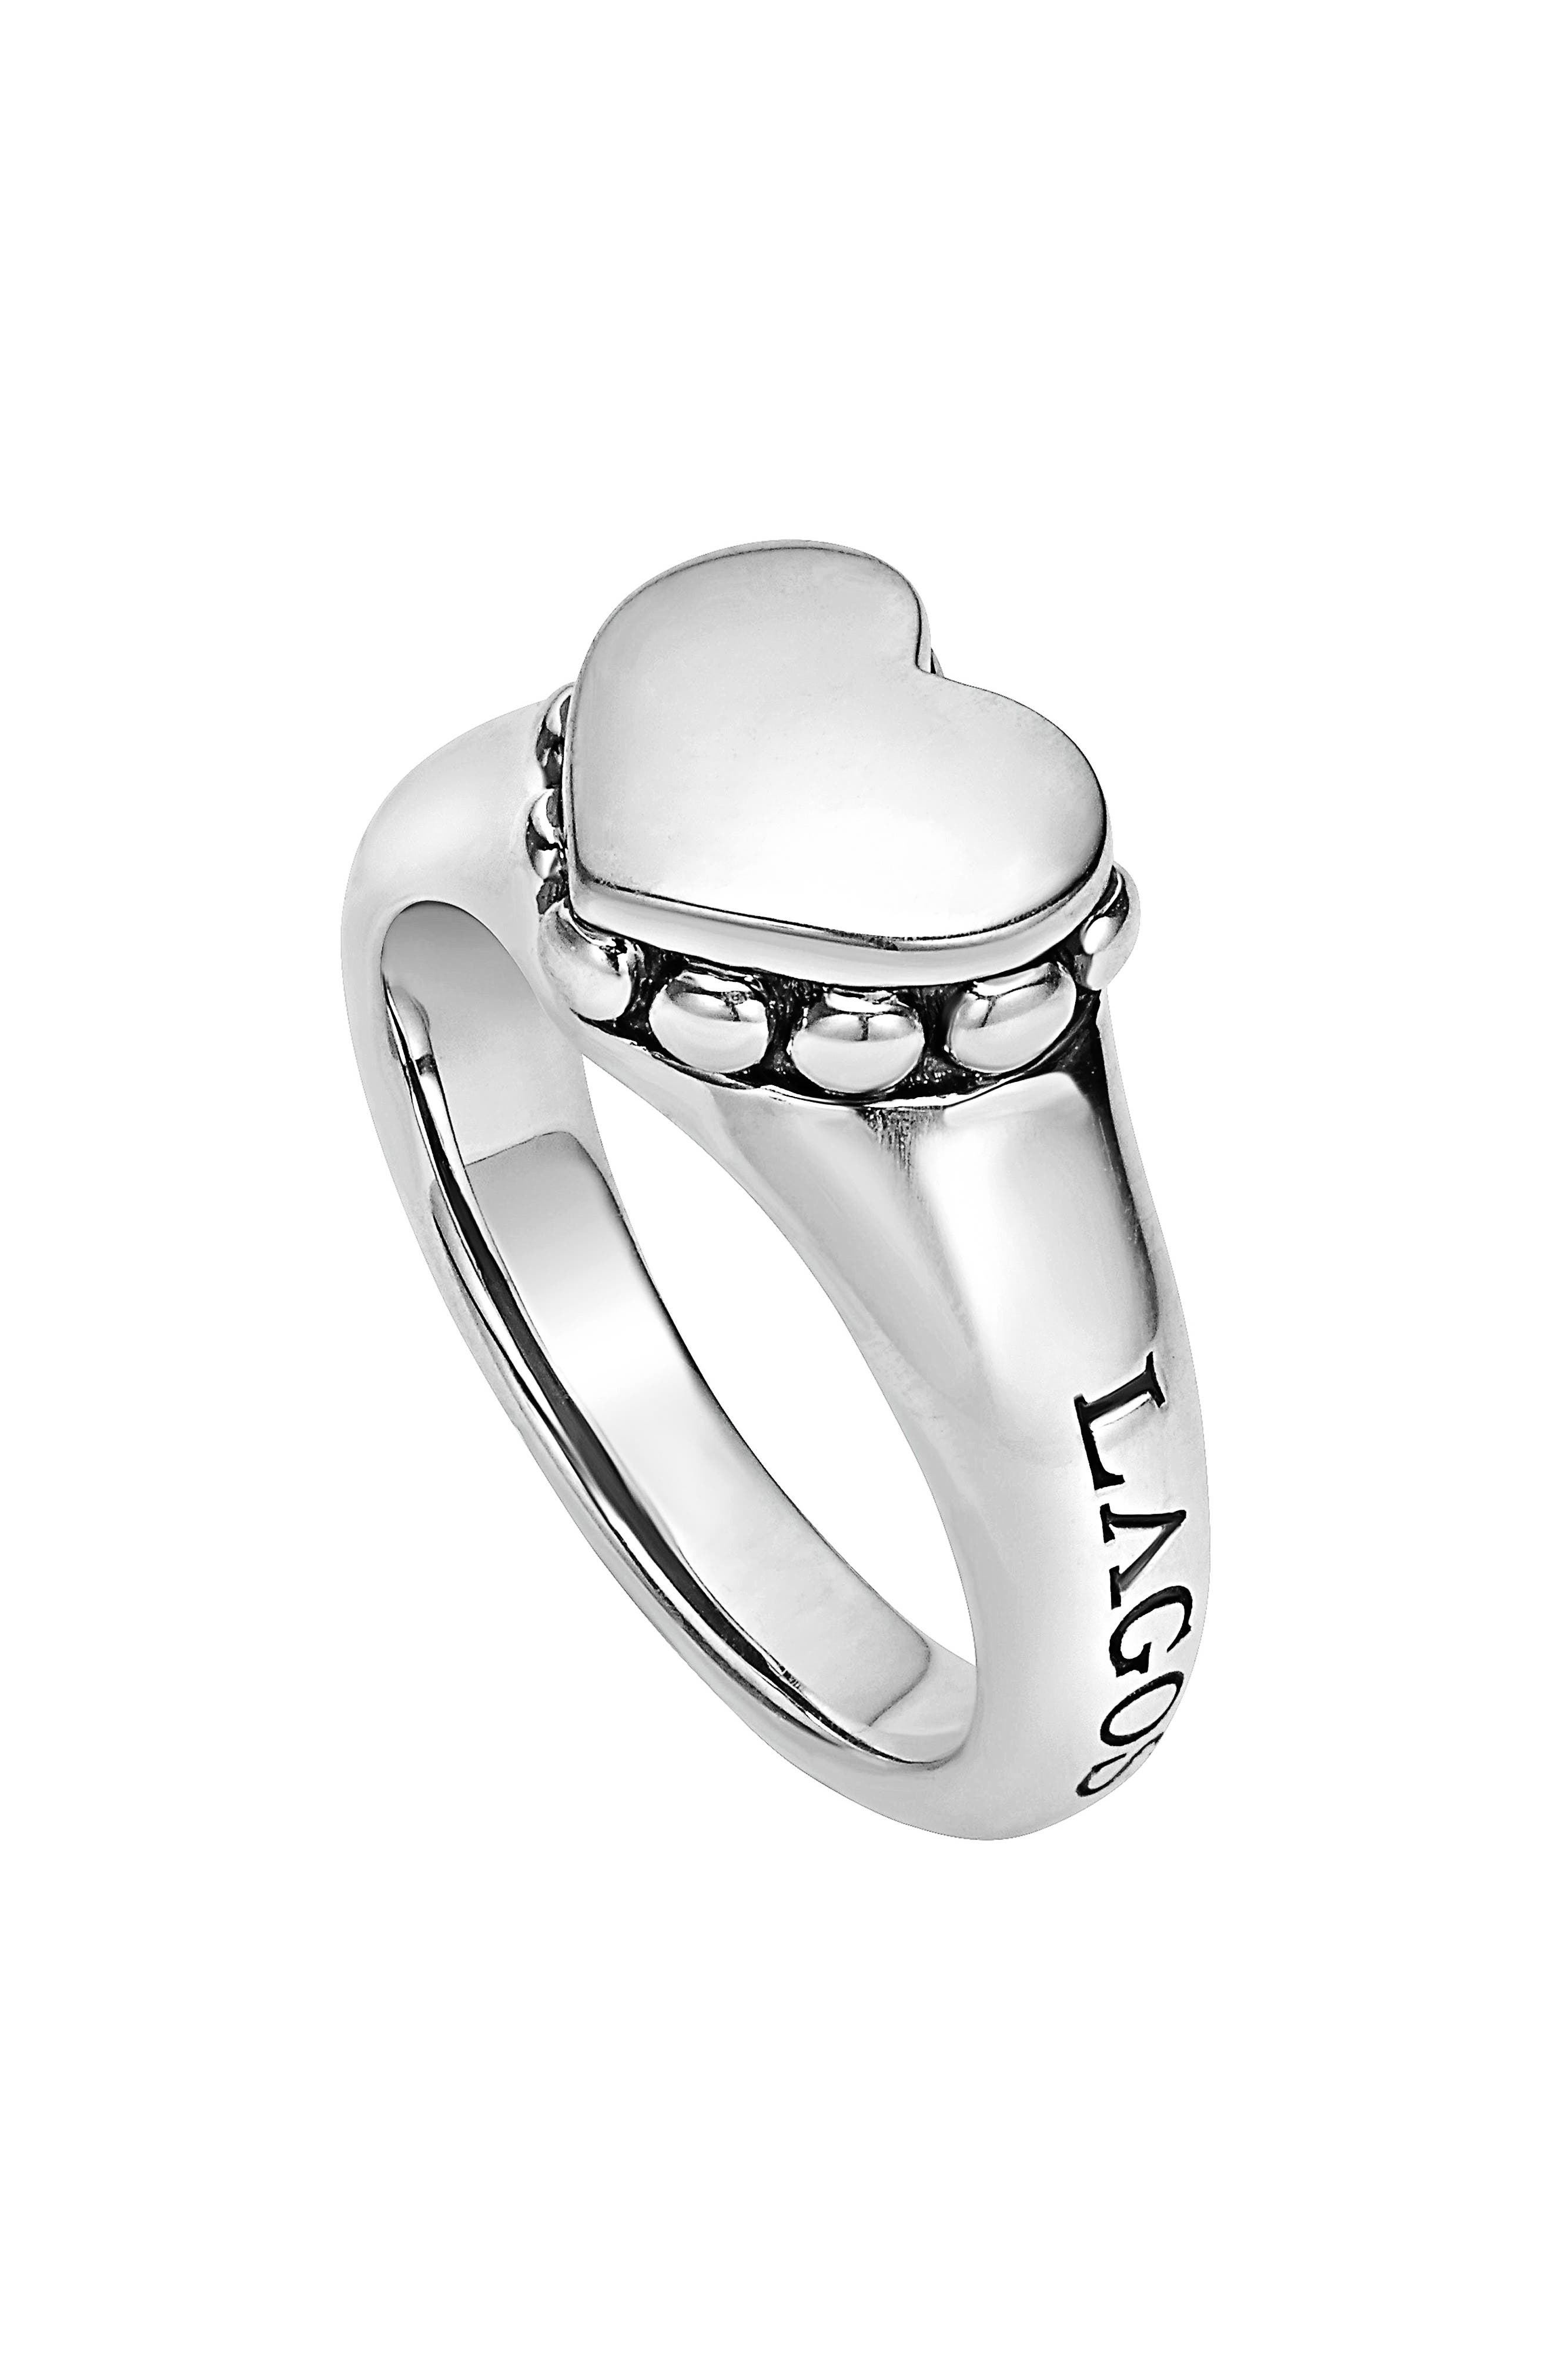 'Beloved' Small Heart Ring,                         Main,                         color, Sterling Silver